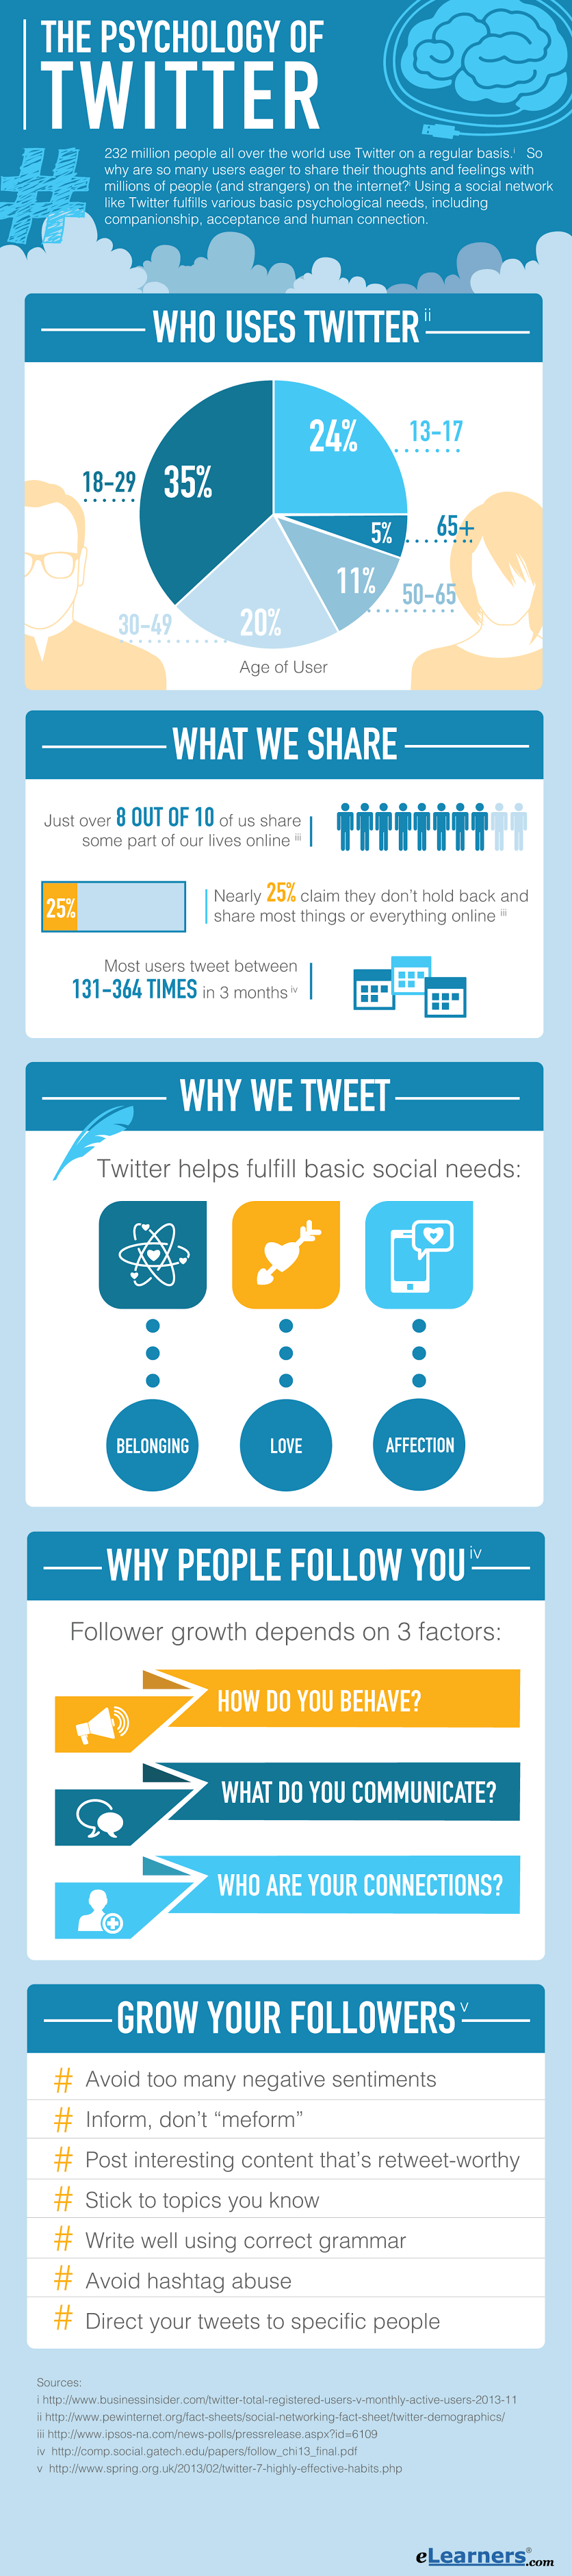 infographic the psychology of twitter